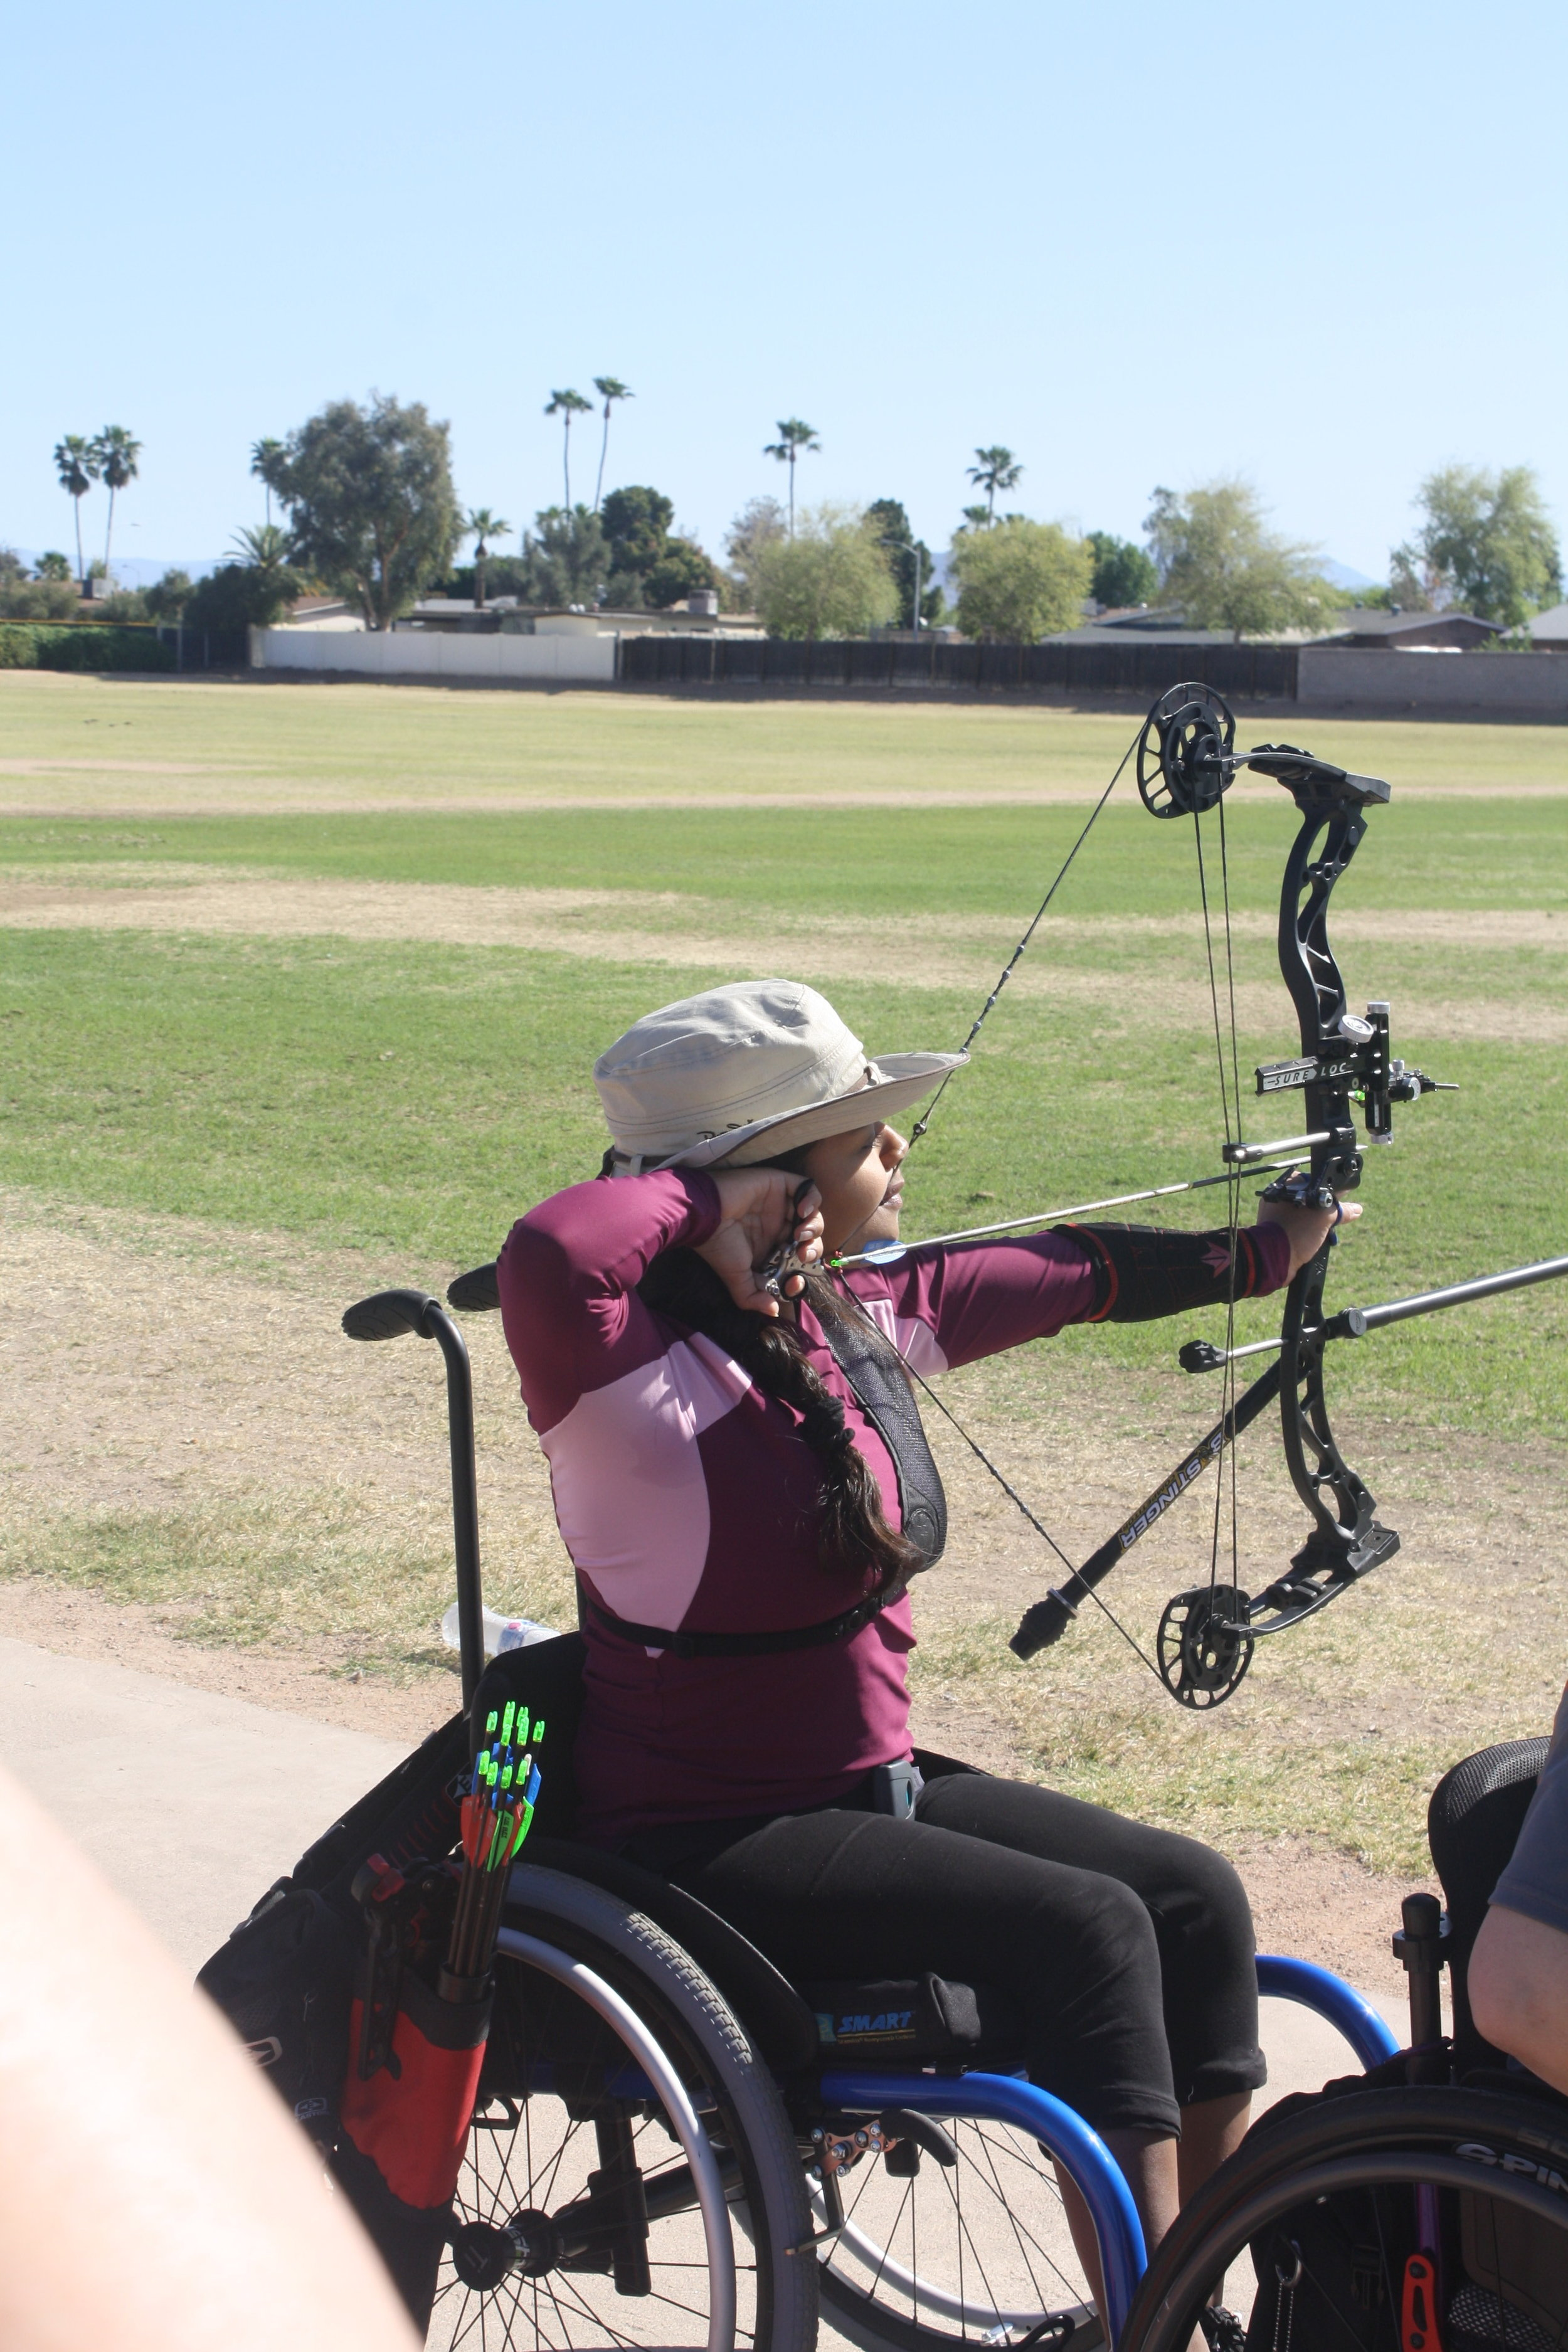 - Valeria Duron is turning 17 years old this month and she has been in AzDS's archery program for two years now. Valeria has cerebral palsy and she was born at 29 weeks old, so her dad calls her a real miracle. This is her first trip to Junior Nationals, and she has qualified for the event with a score of 626 at the Desert Challenge Games. Valeria thinks that the archery program has changed her life a lot, specifically by motivating her in all aspects of her life and by giving her a group of friends. Valeria also beat the goal that Coach John Dee set for her at the beginning of the season. While Valeria is still rather new to archery, she has a lot of skill and is planning to attend open tryouts for the Paralympics in September of this year. We can't wait to watch her compete at Junior Nationals!